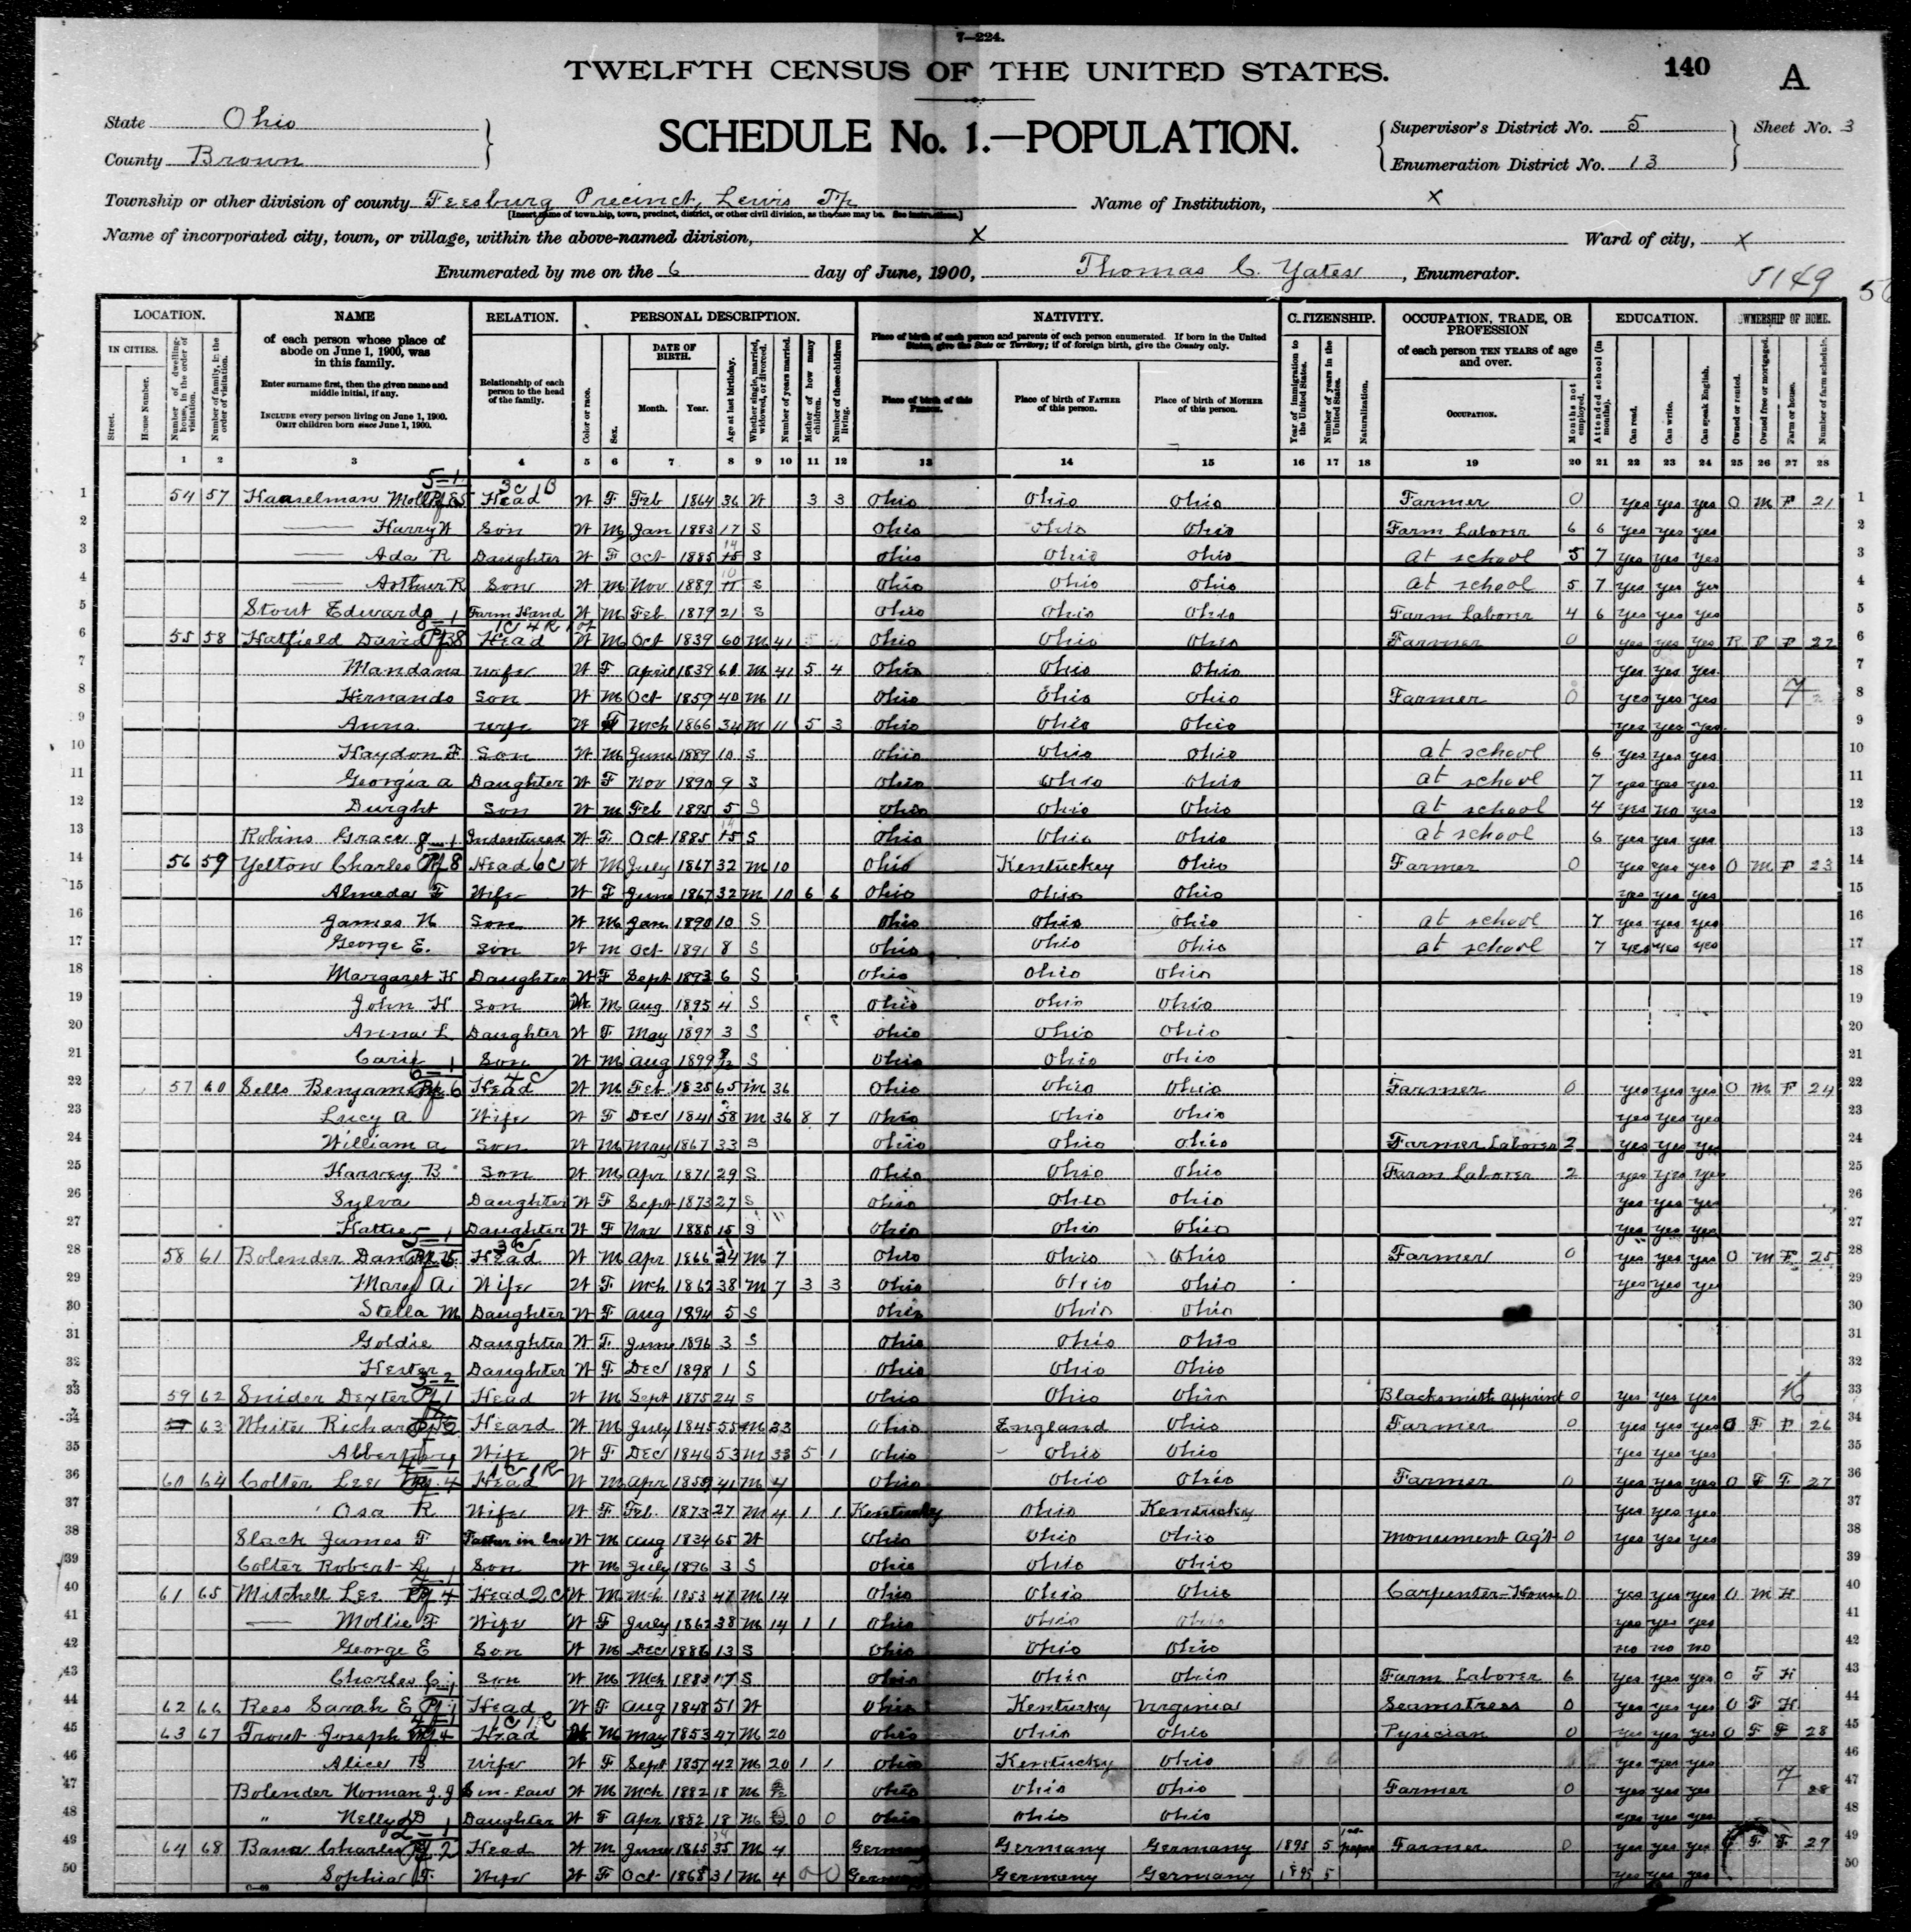 Ohio: BROWN County, Enumeration District 13, Sheet No. 3A